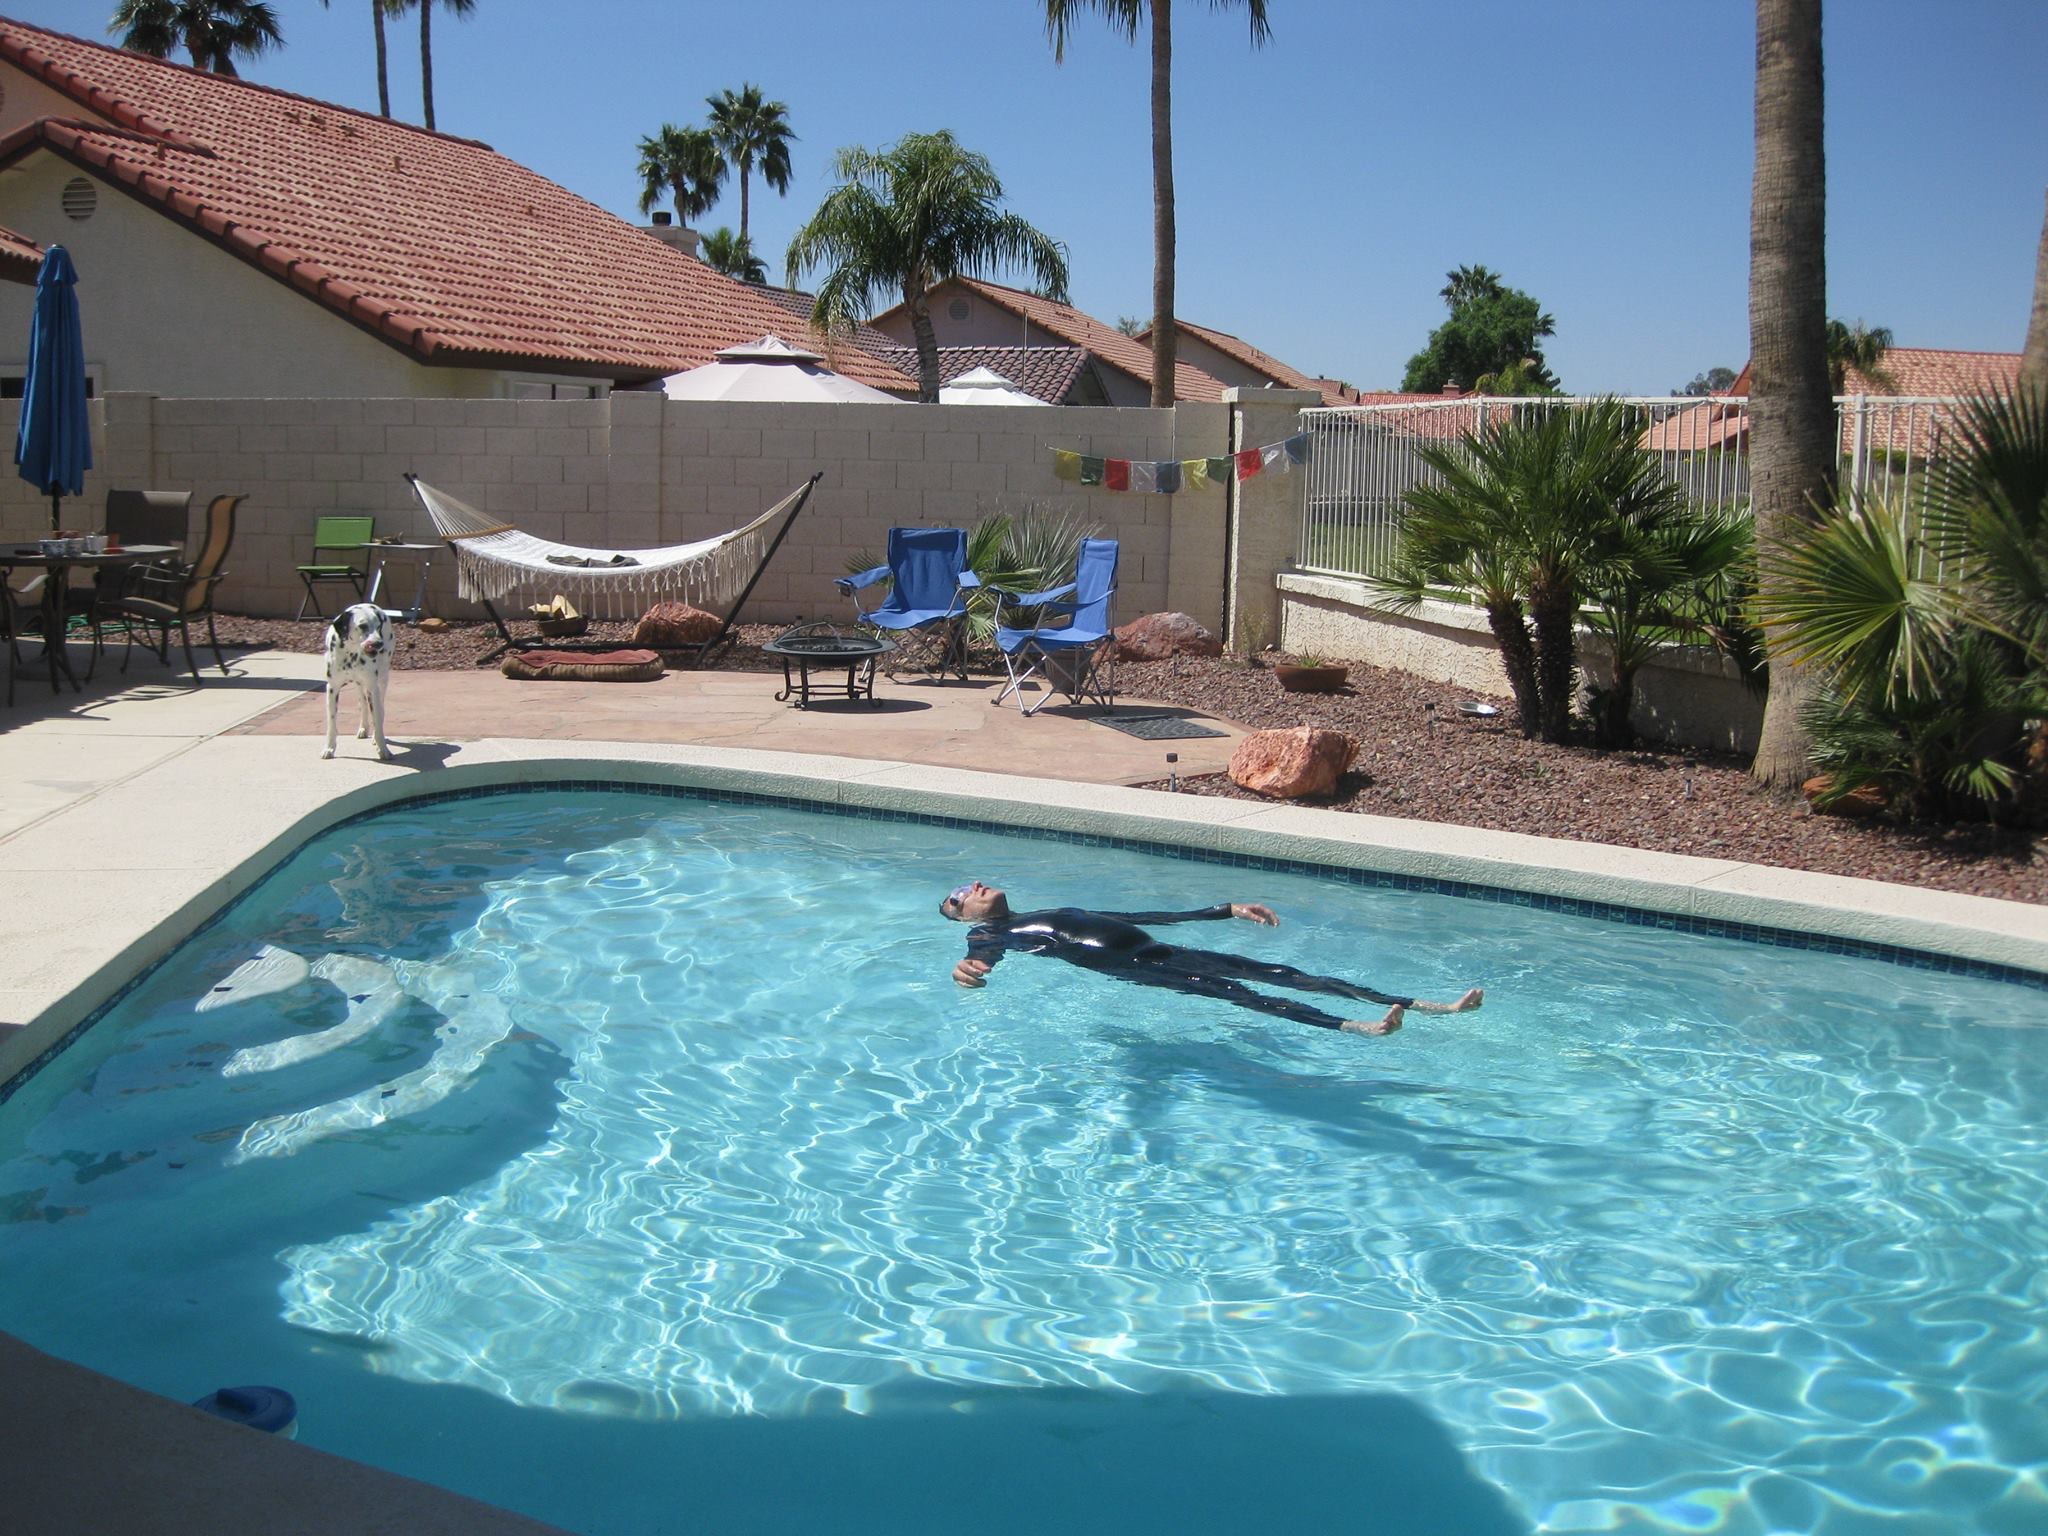 Chuck floating in the pool right after we bought our house in Arizona